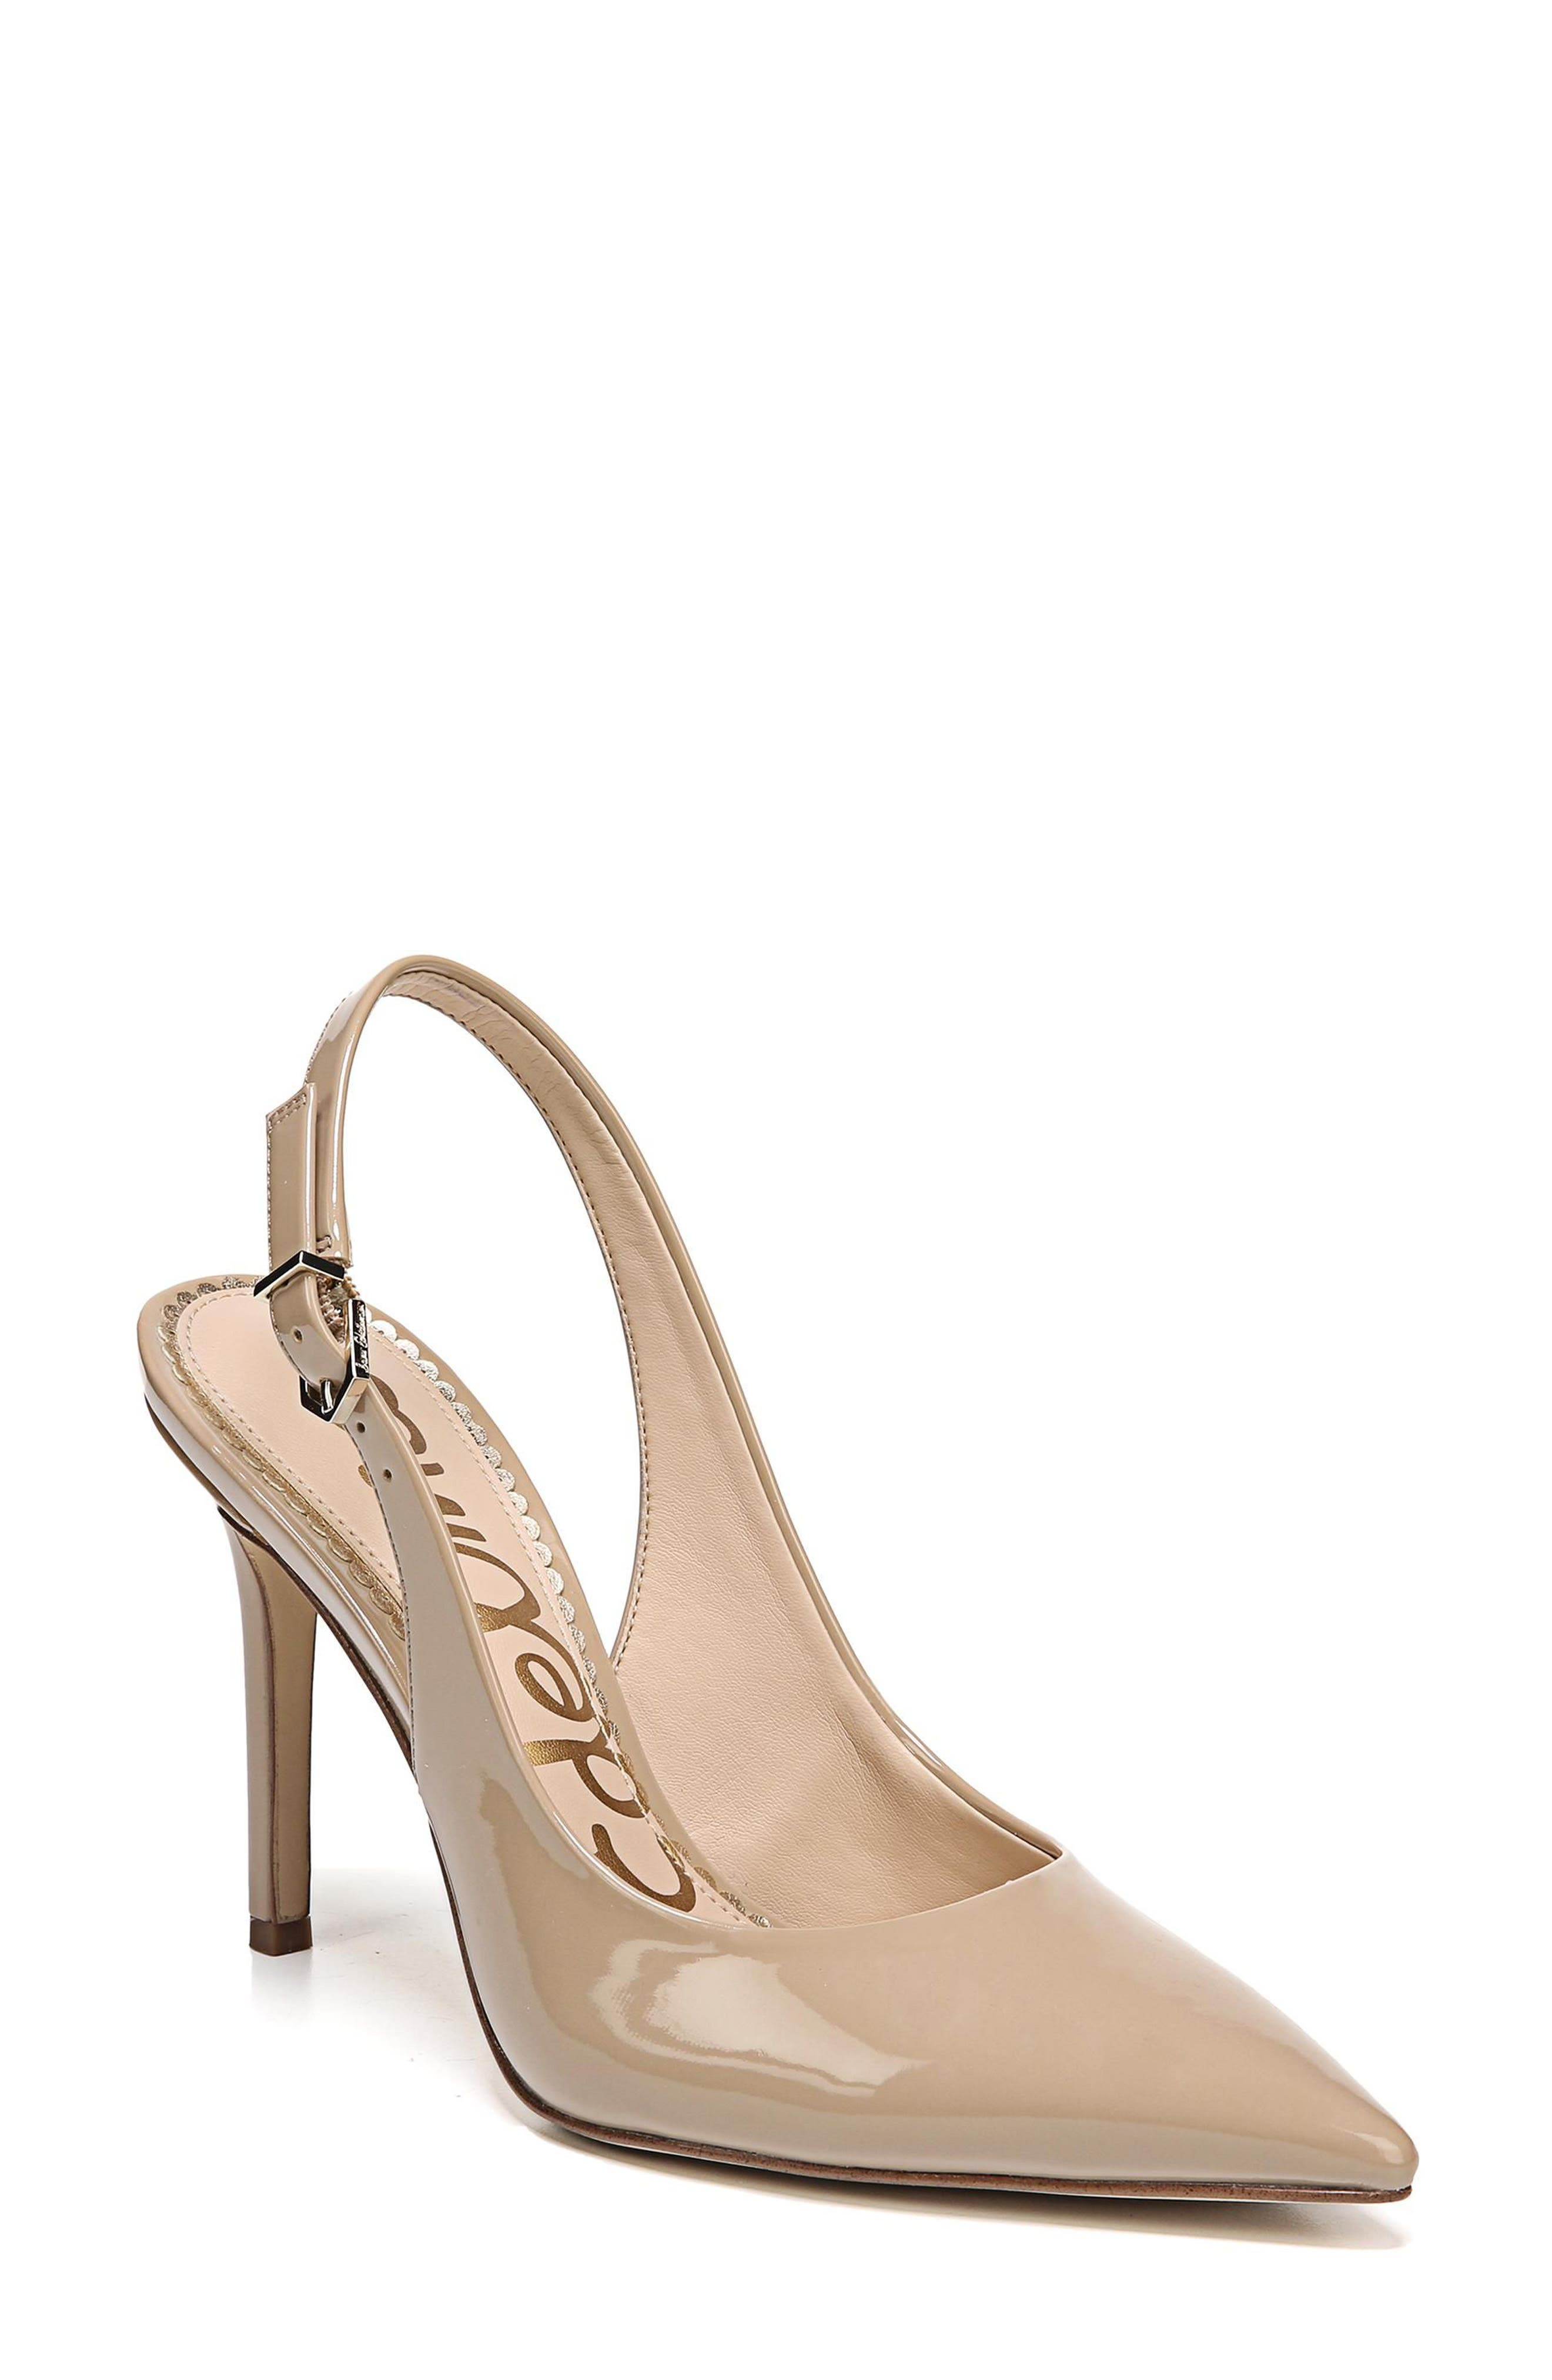 Hastings Slingback Pump,                         Main,                         color, Classic Nude Patent Leather